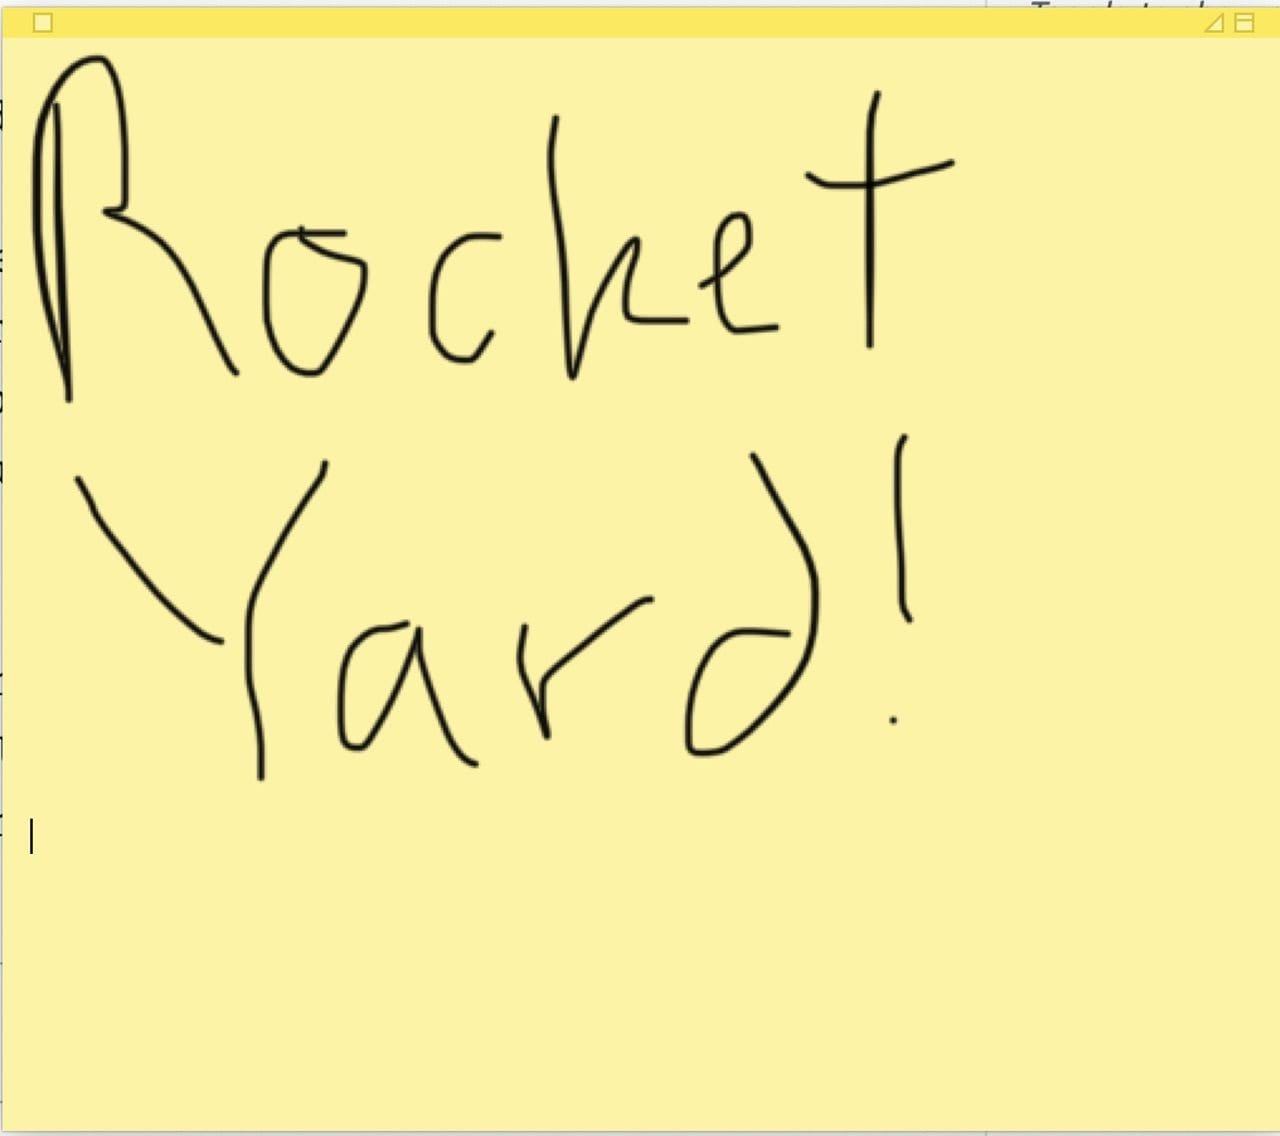 Sketch on an iPhone or iPad to make a handwritten sticky note